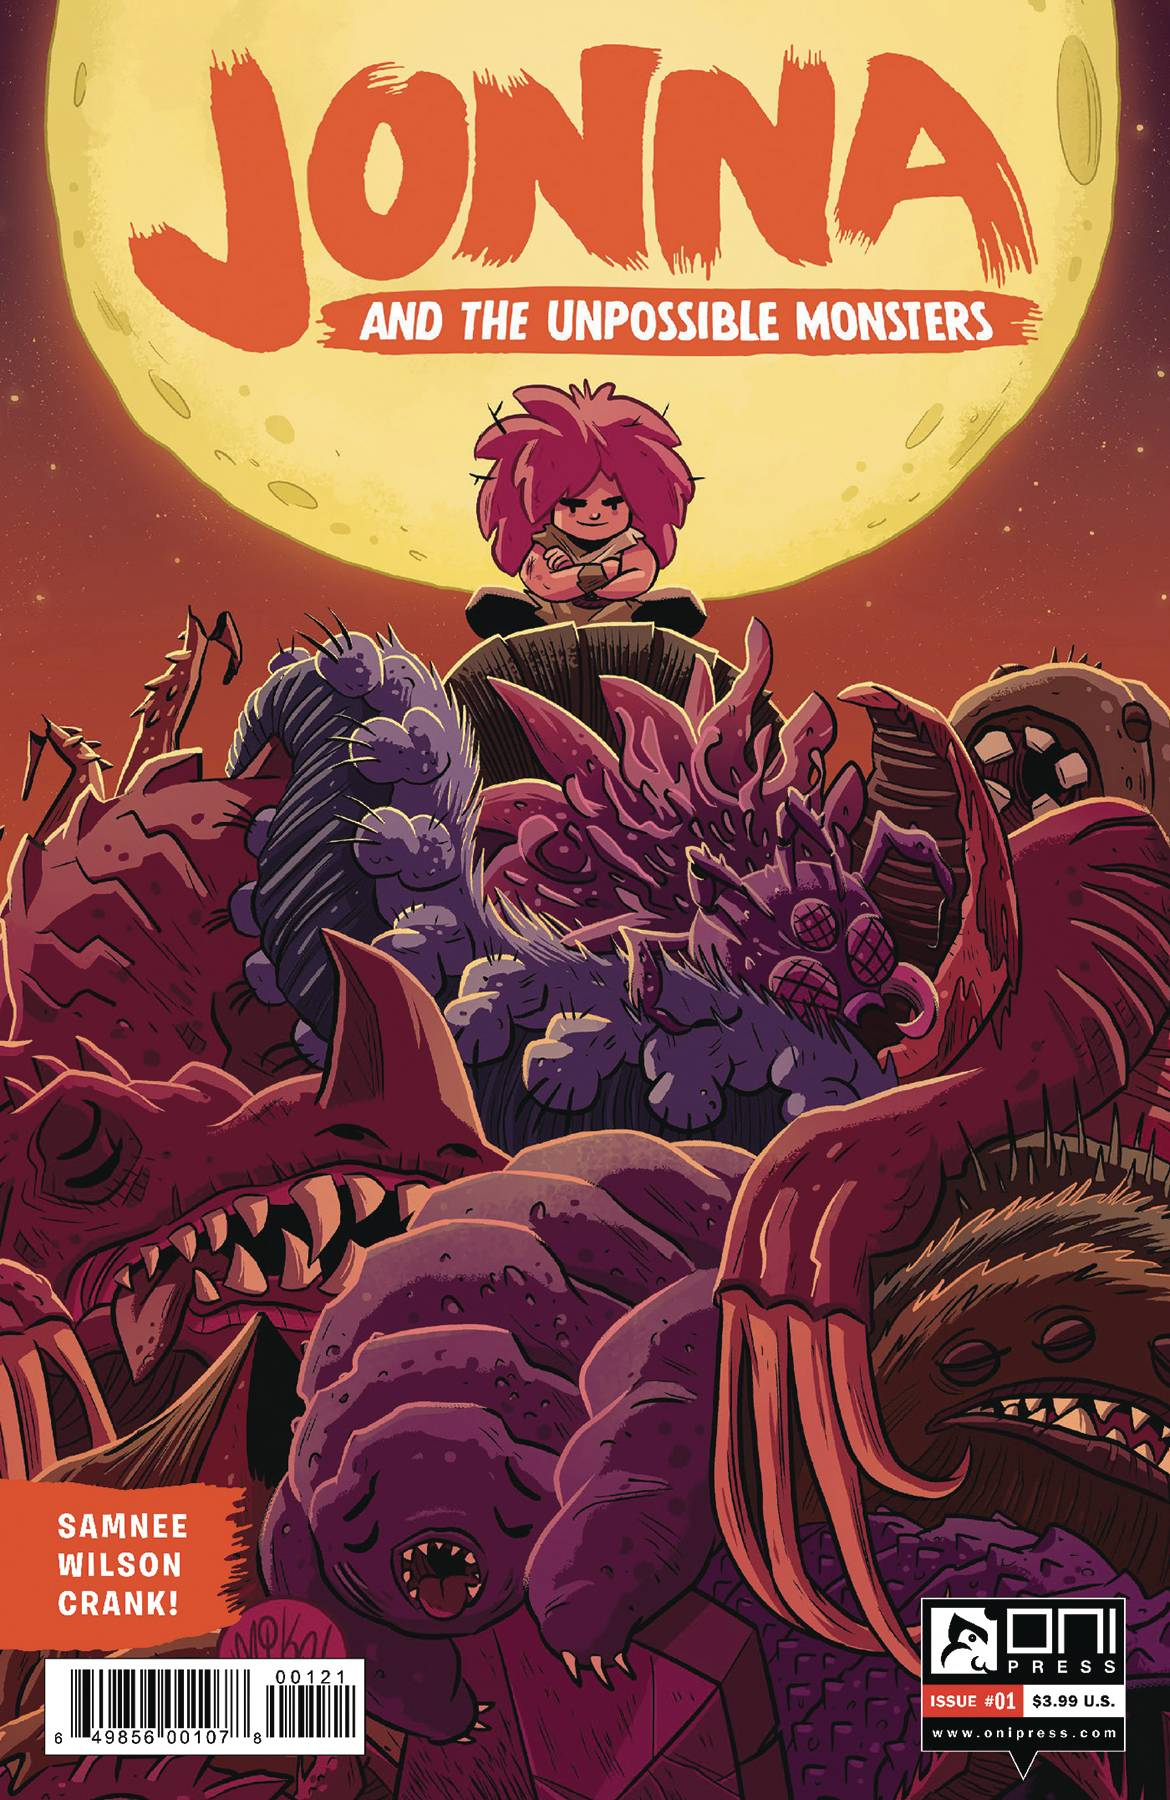 JONNA AND THE UNPOSSIBLE MONSTERS #1 CVR B MAIHACK